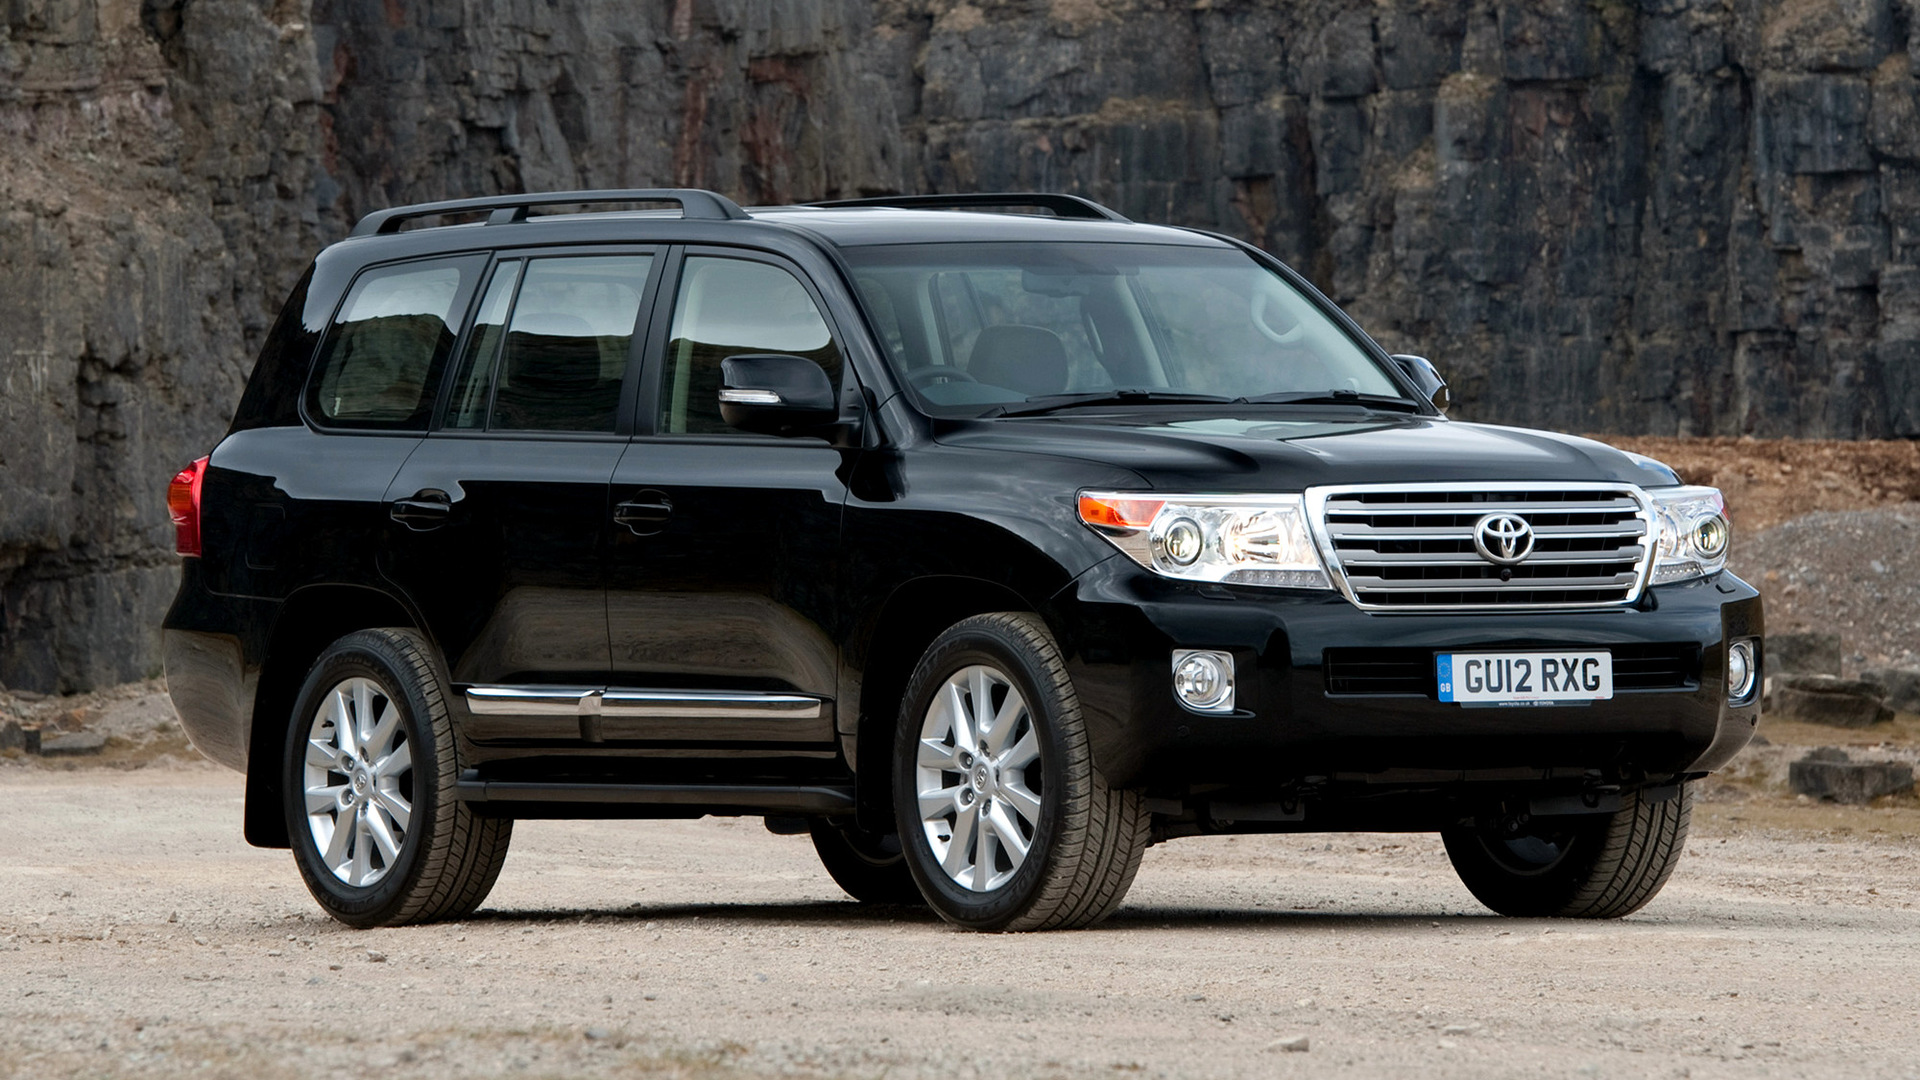 Toyota Land Cruiser Hd Wallpaper Toyota Land Cruiser V8 2012 Wallpapers And Hd Images